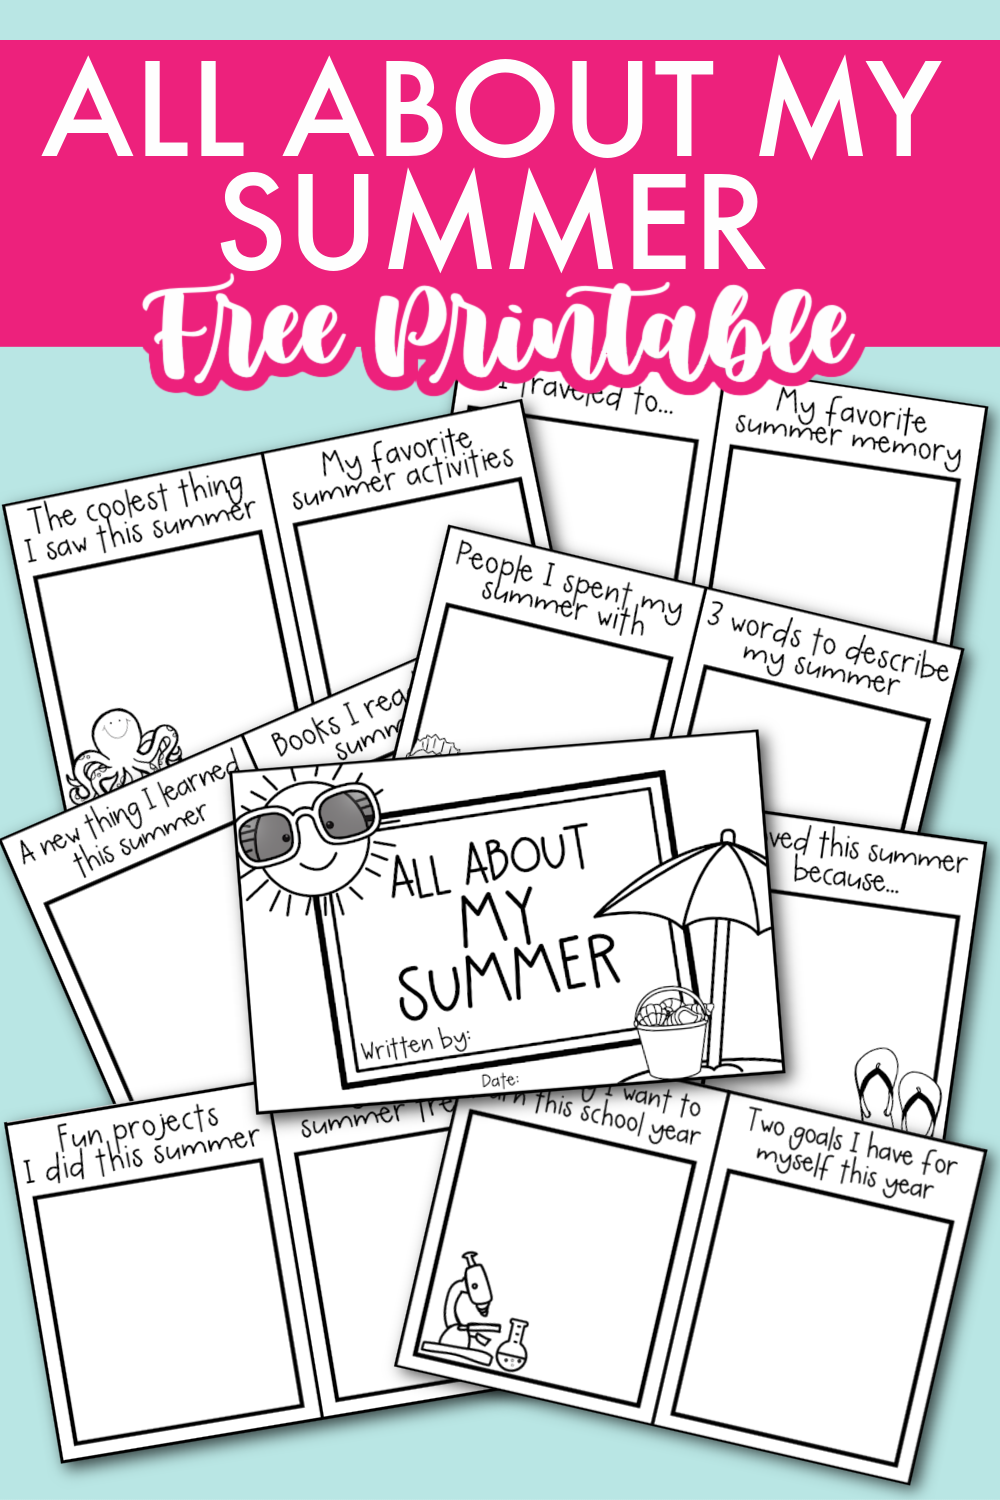 All About My Summer Back To School Activity Kara Creates